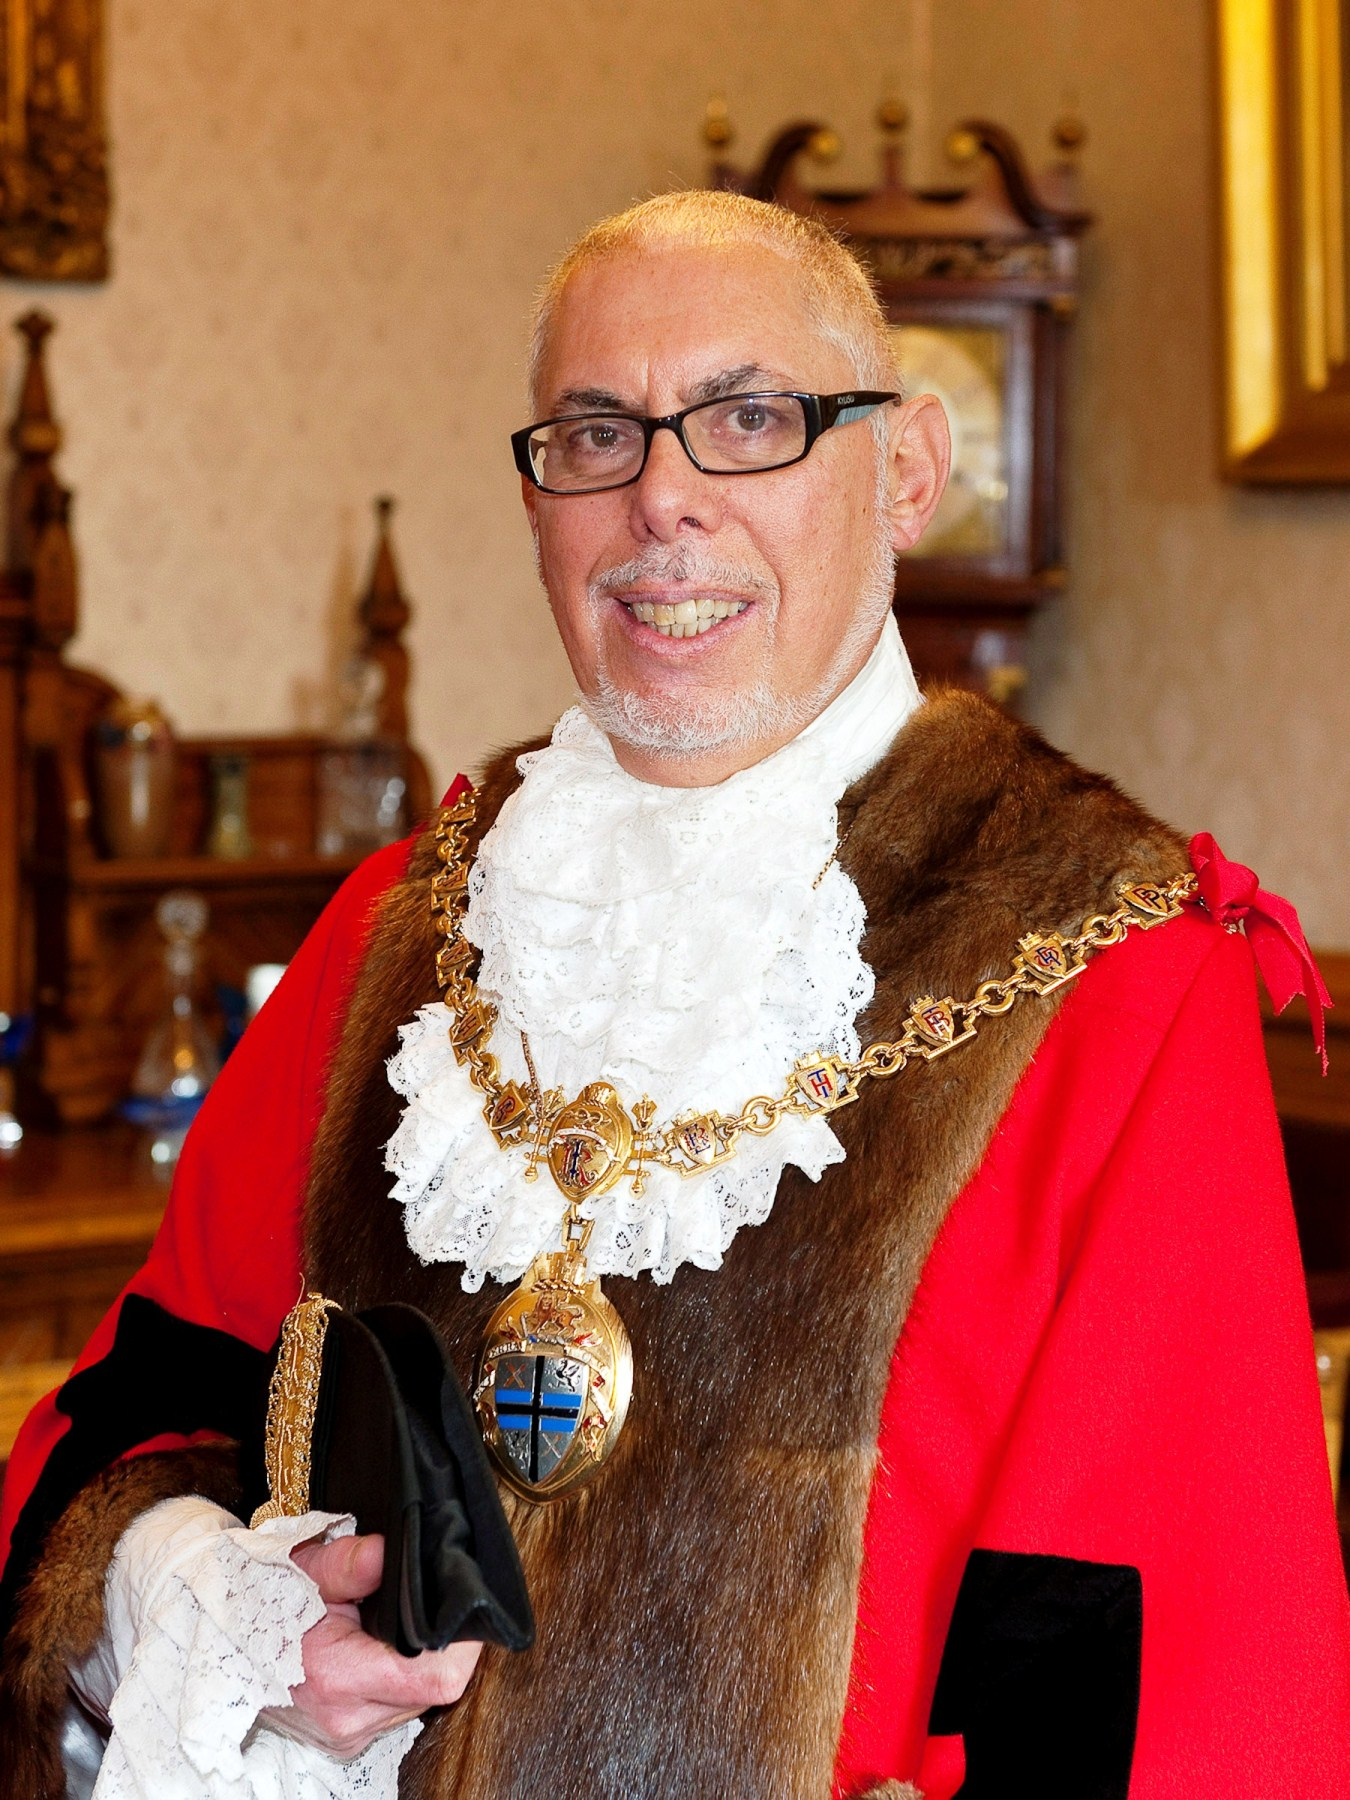 INVITE: the new Mayor of St Helens, Councillor Geoff Pearl